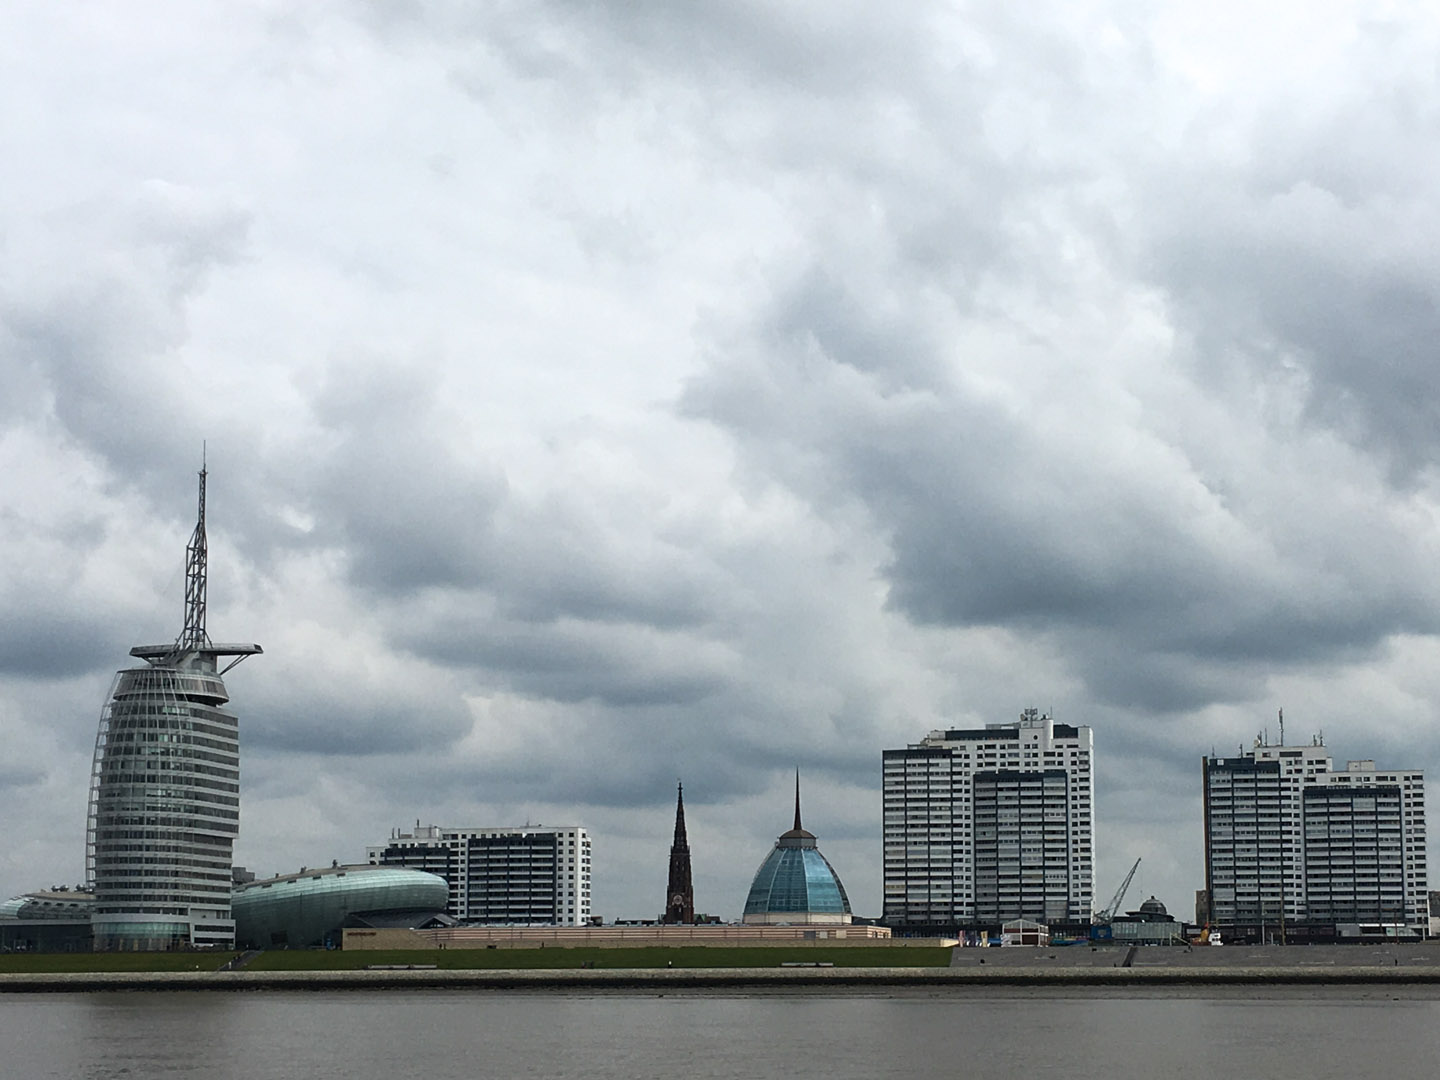 Bremerhaven from the Weser